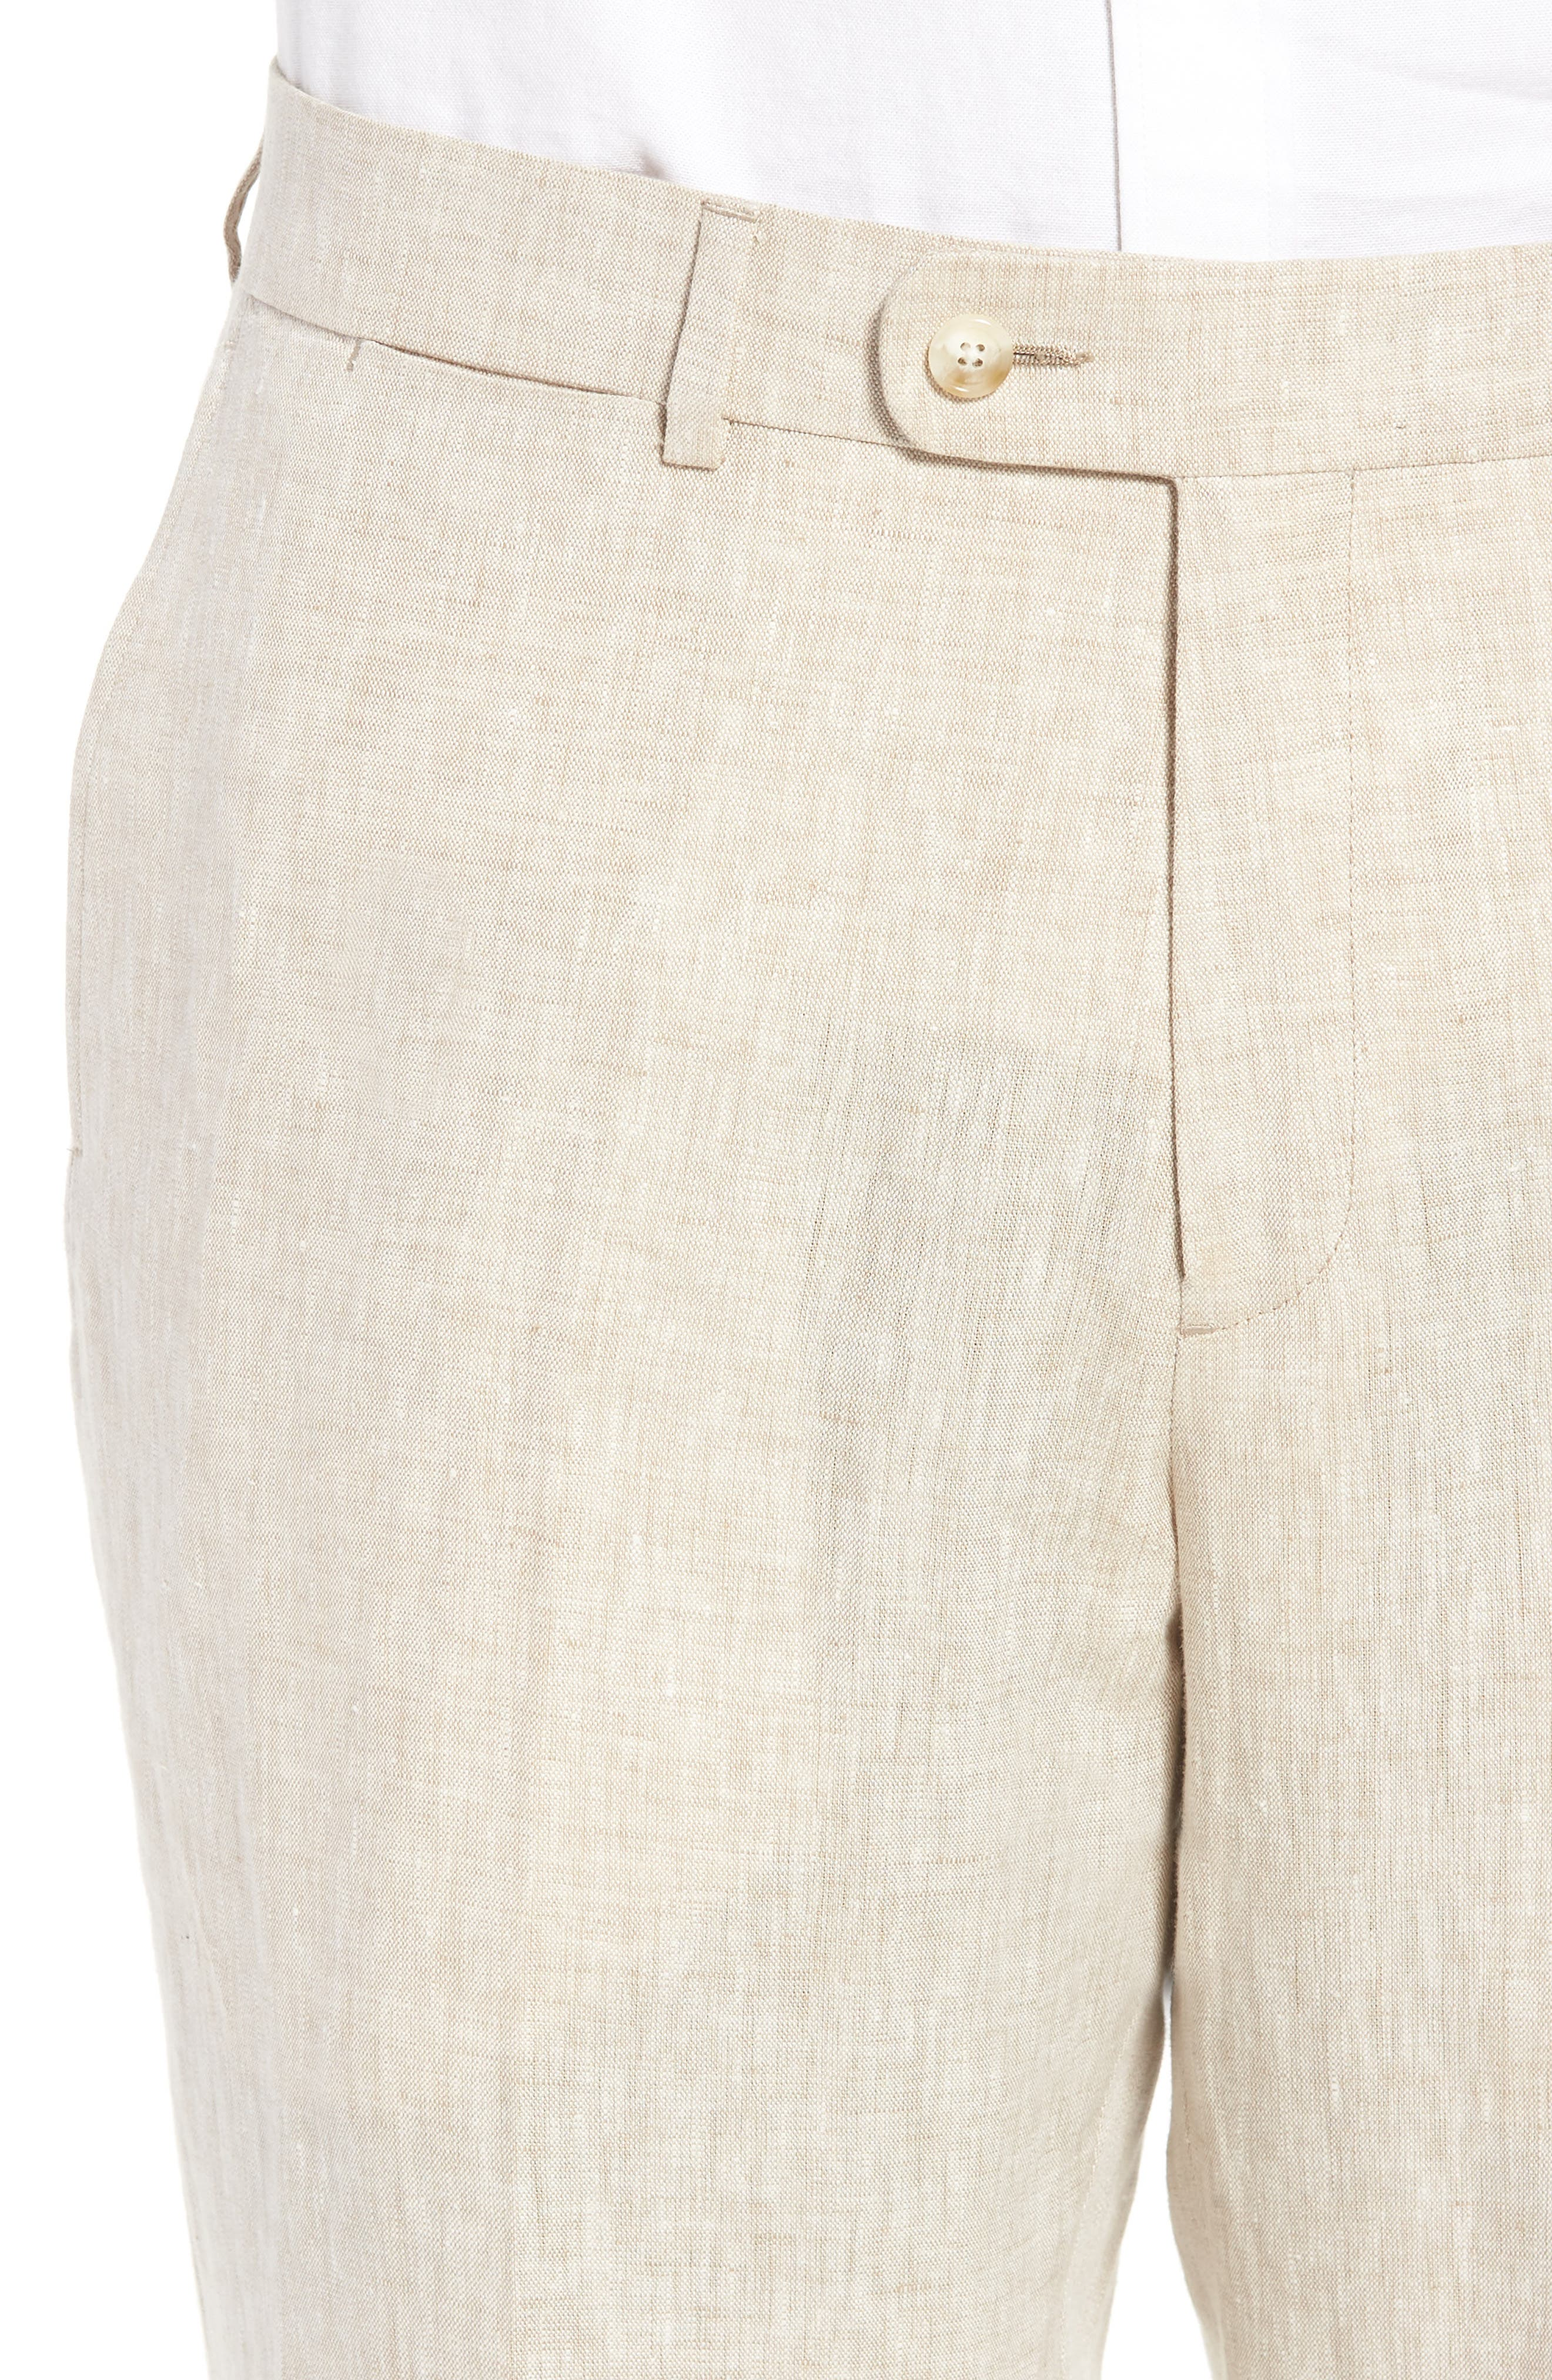 Andrew AIM Flat Front Linen Trousers,                             Alternate thumbnail 4, color,                             105